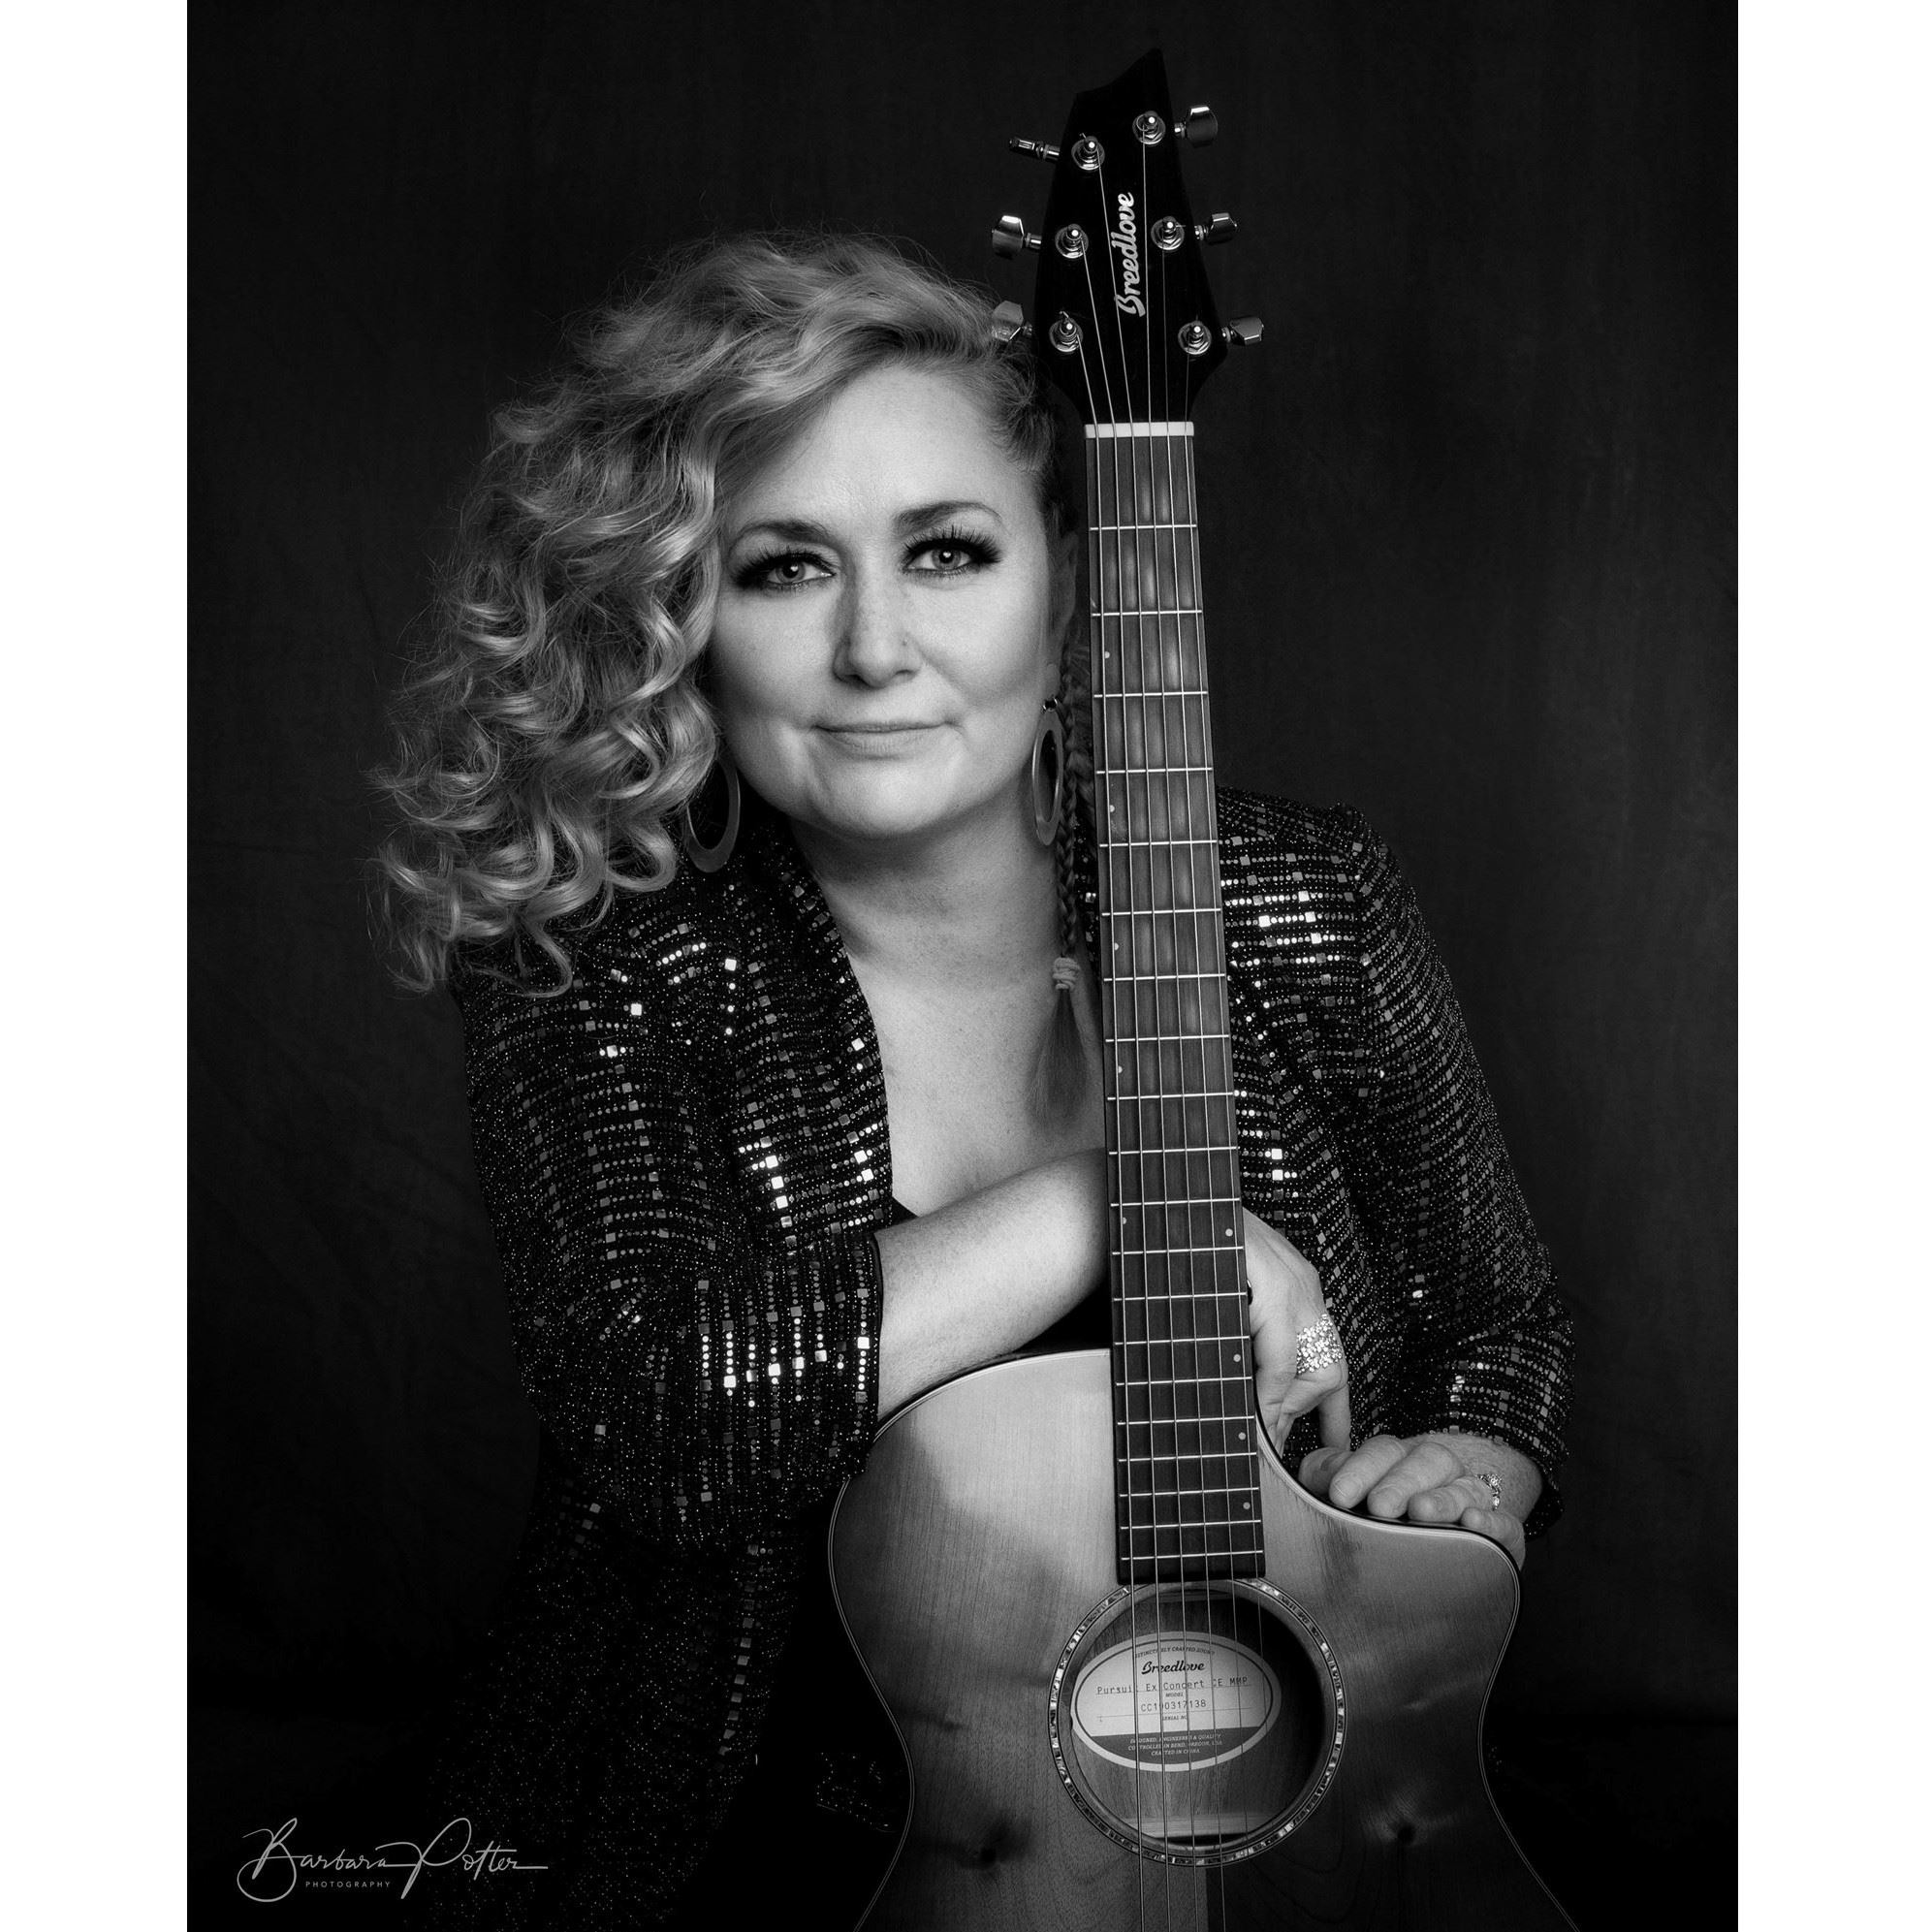 Photo: Jessica Lynne with her guitar